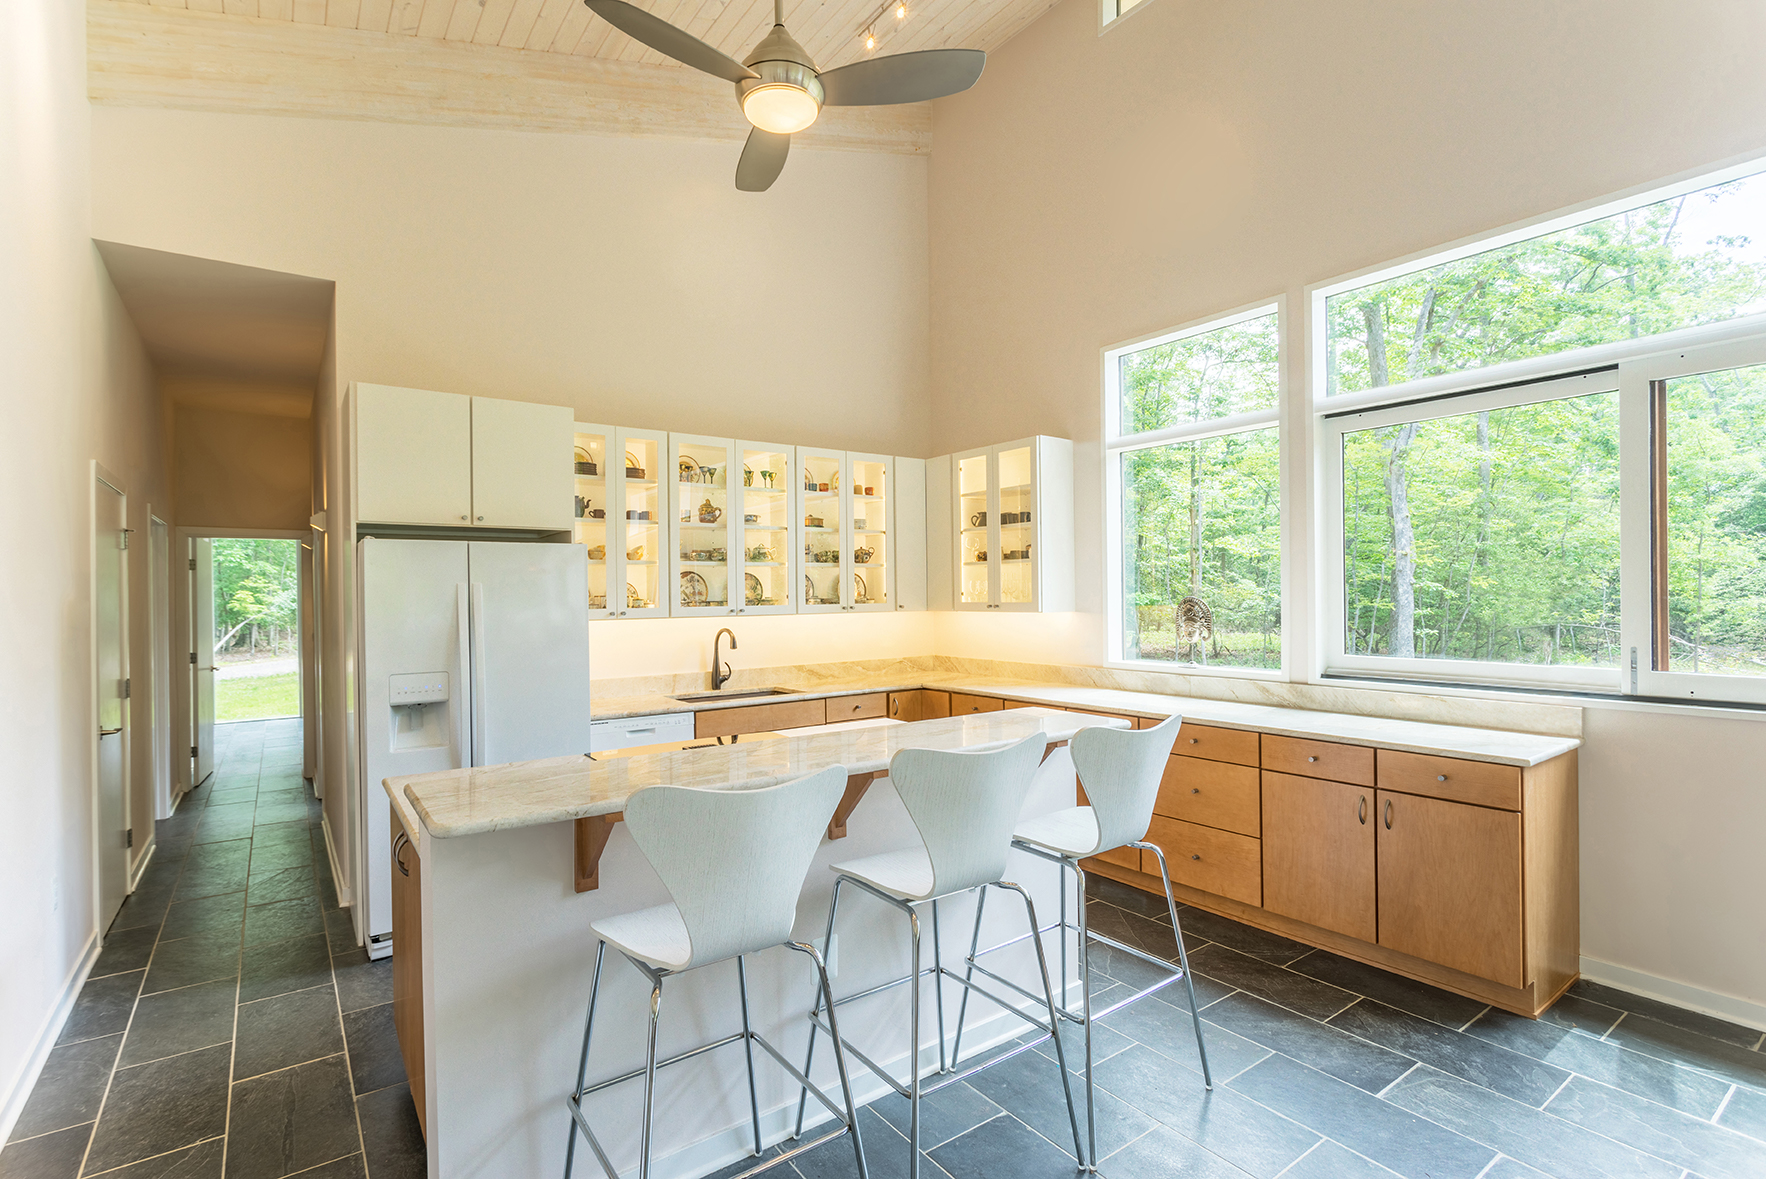 HingeHouse, in Collaboration with Maryann Thompson Architects